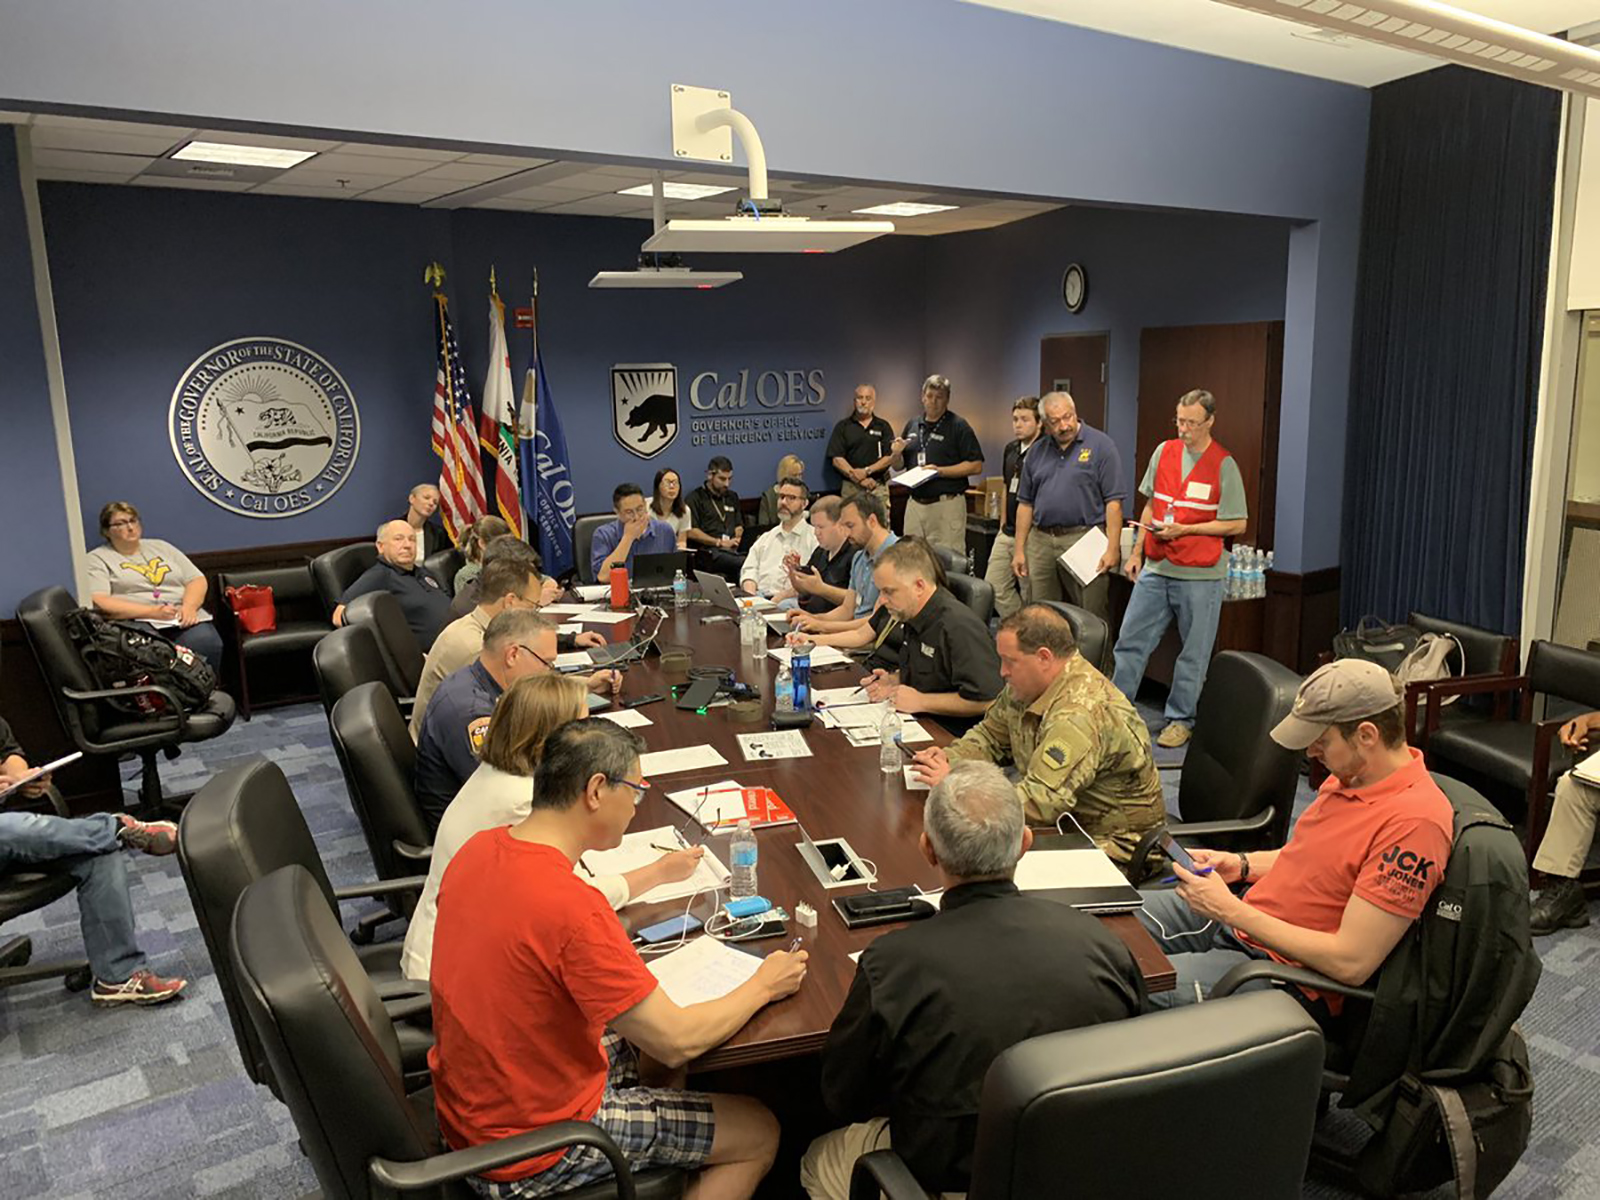 The leaders of the region's emergency services are coordinating aid and regional in the Ridgecrest area.